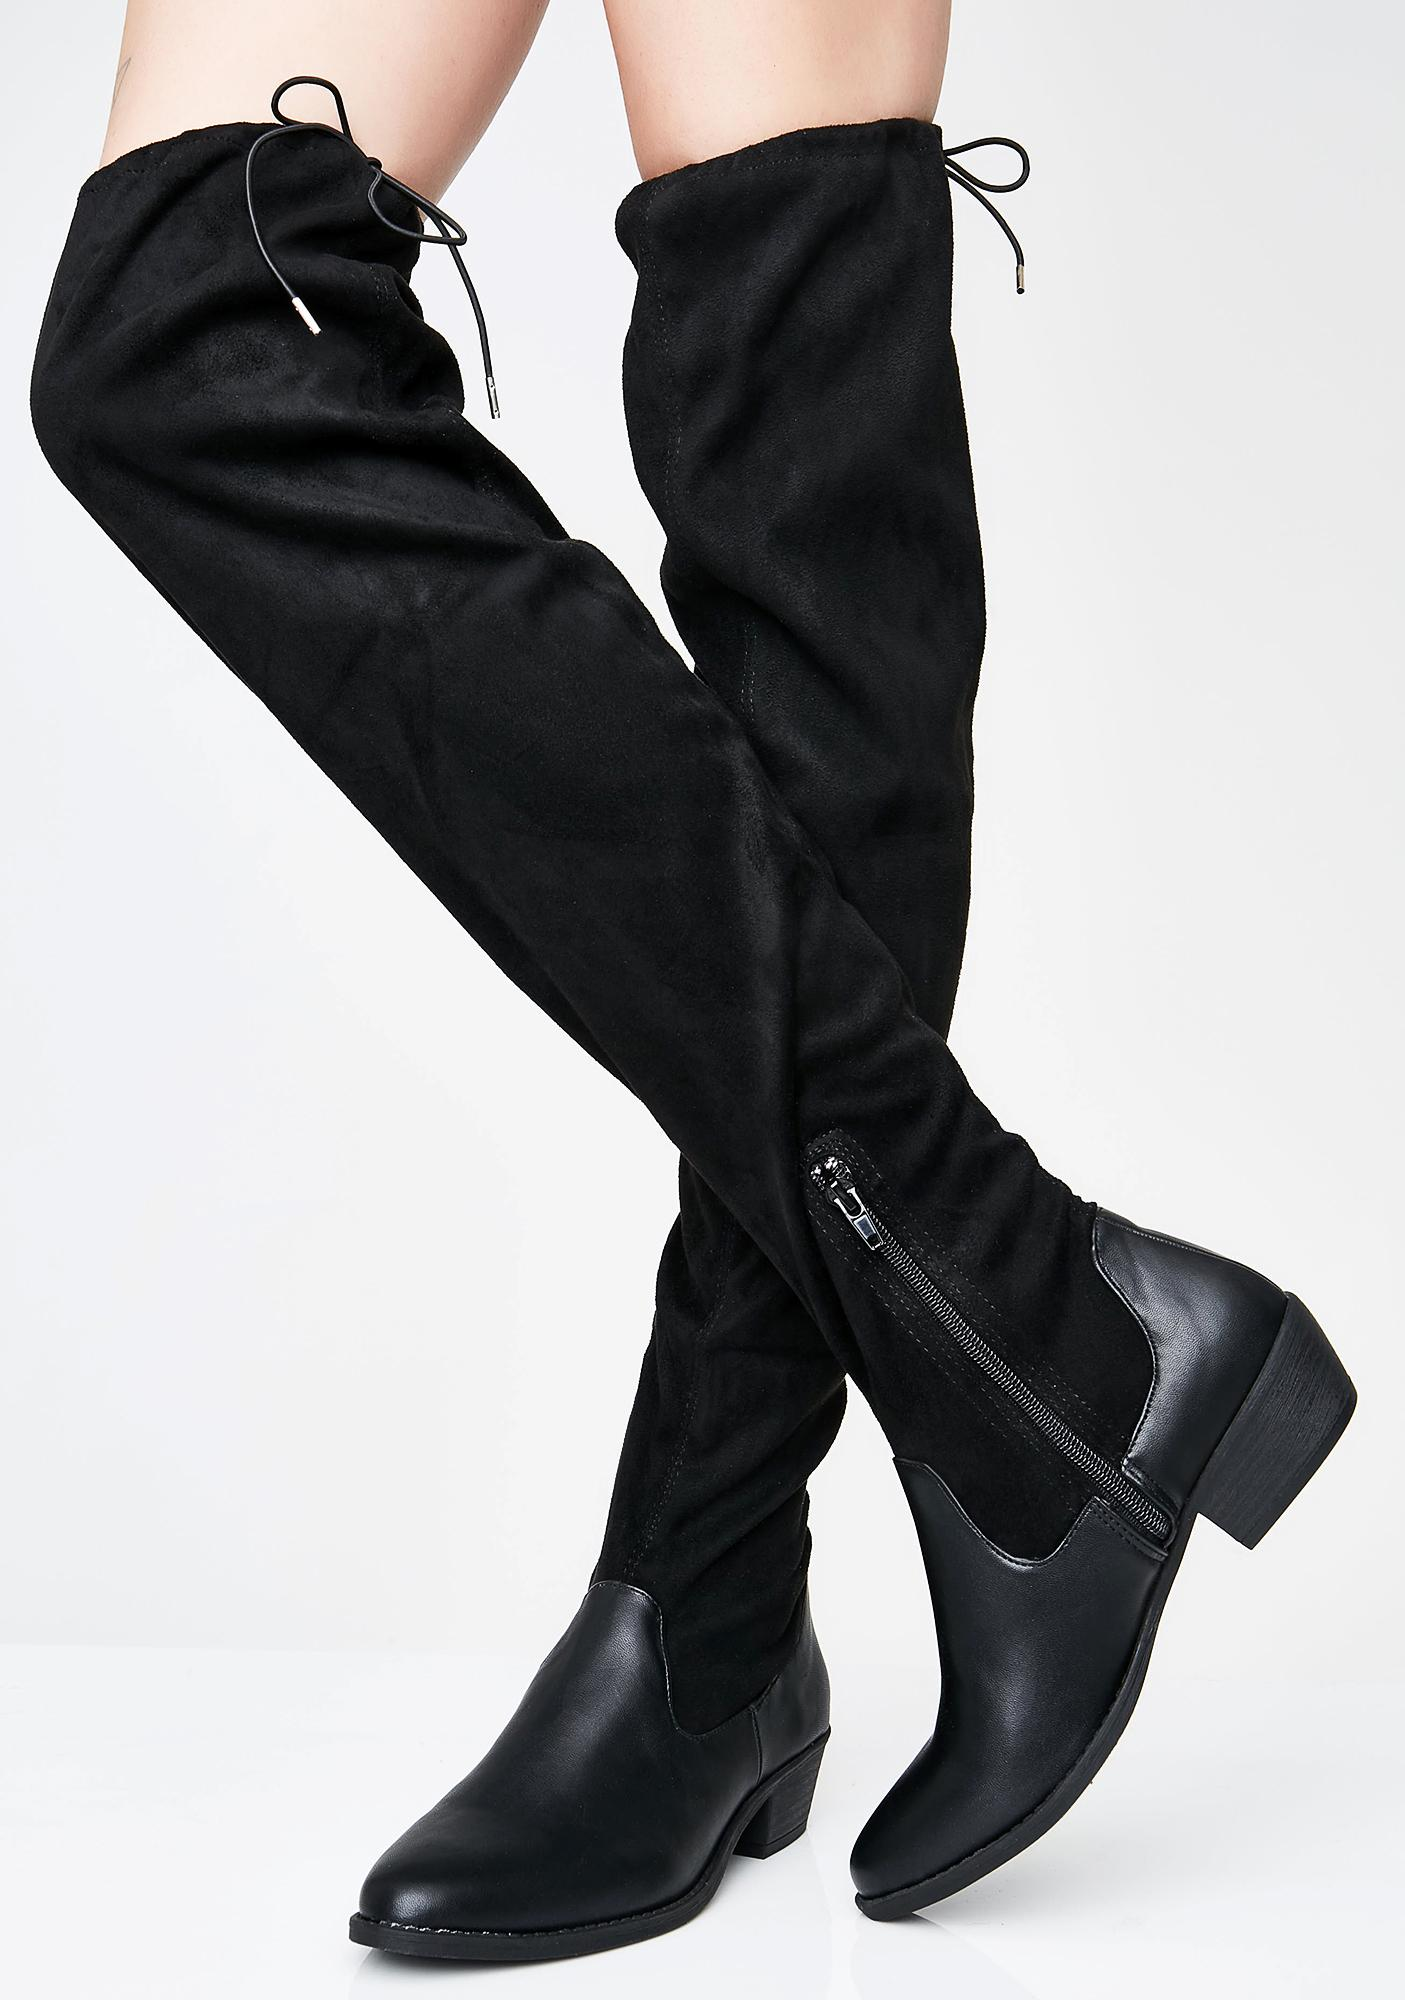 Bad Attitude Over The Knee Boots